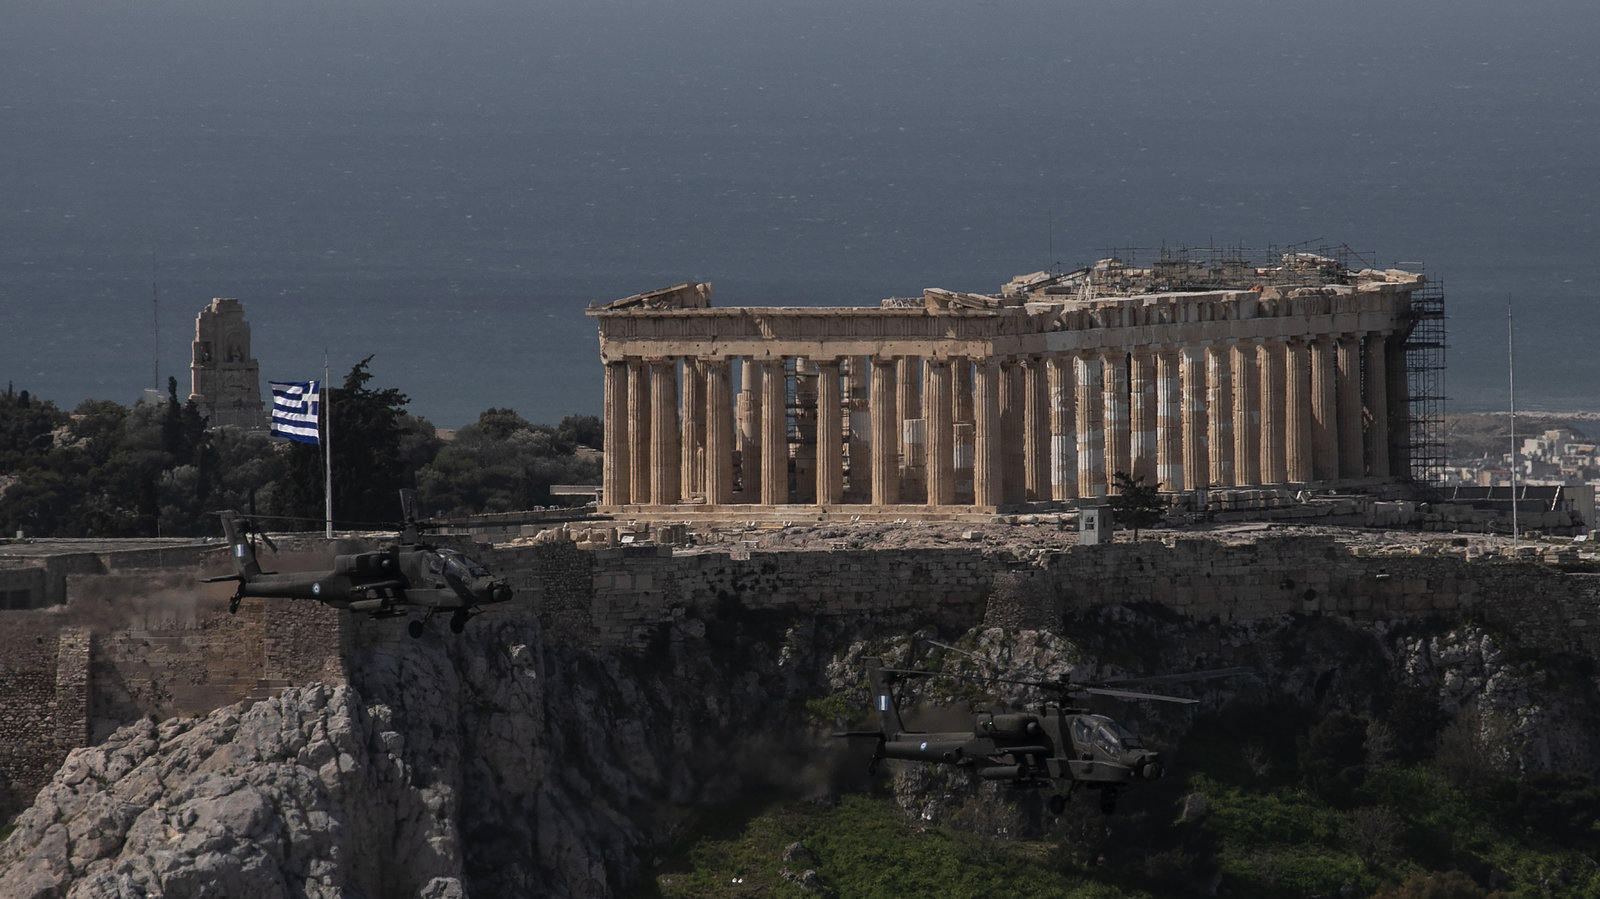 The Coronavirus Is Hurting Travel, So Greece Has Begun Offering Virtual Tourism